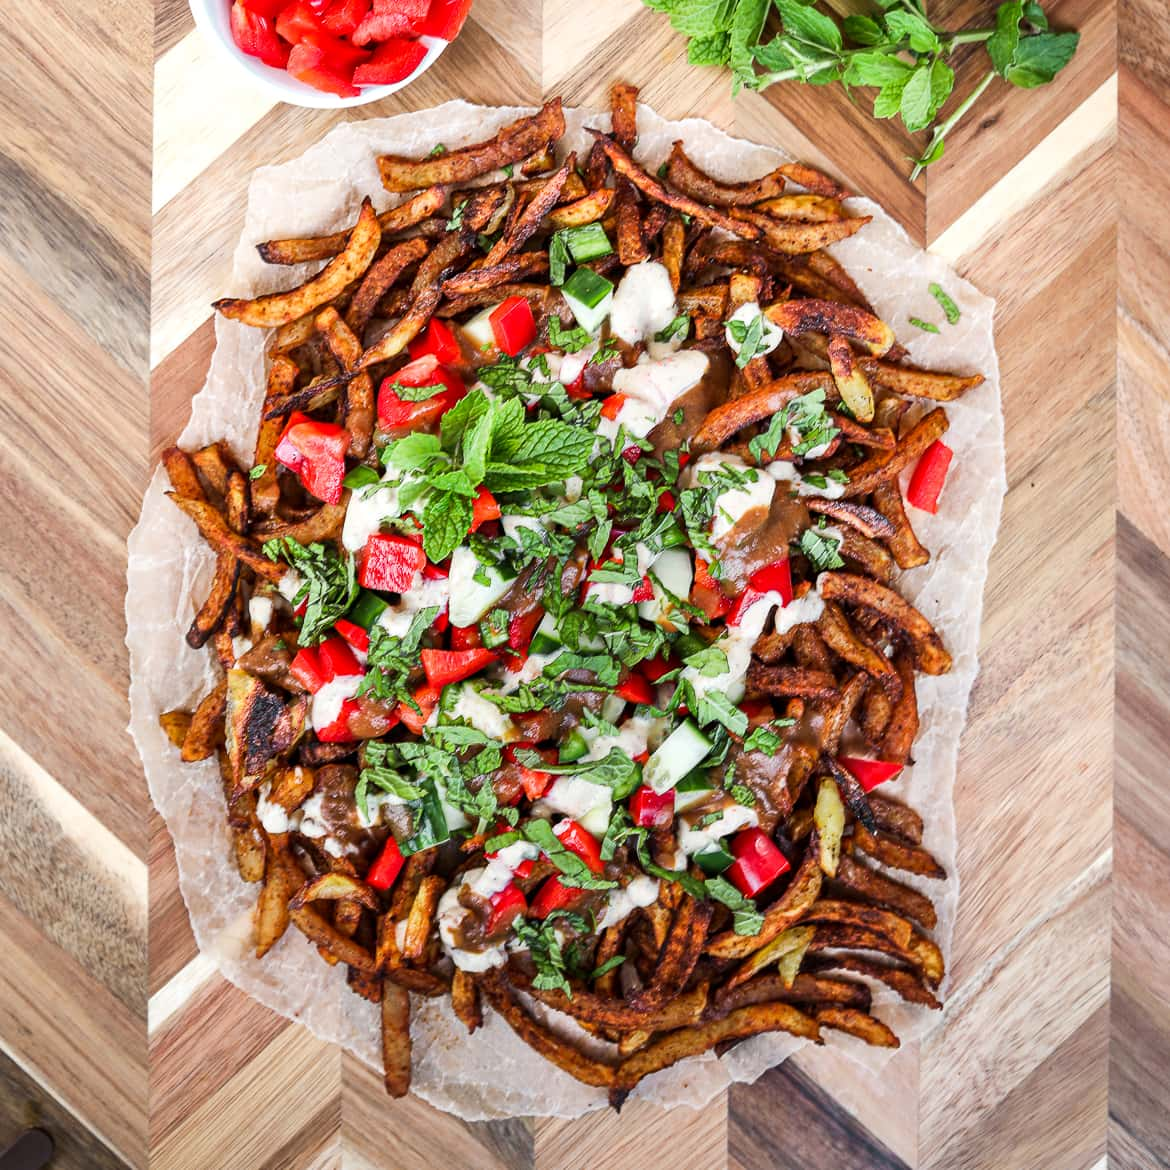 Bhangra Masala Oven Baked French Fries | Easy and Healthy Desi Recipes